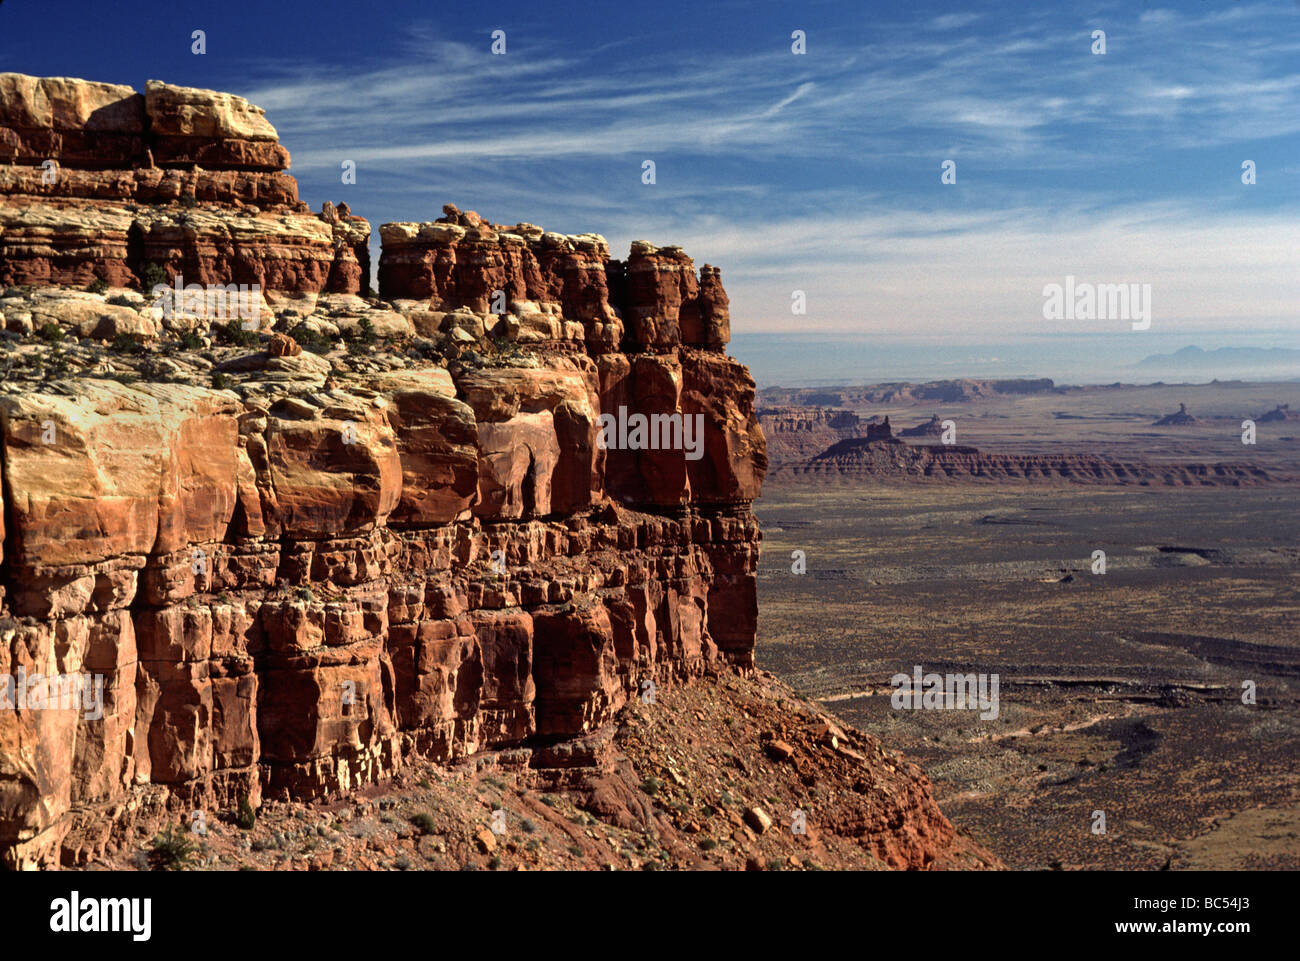 Red rock formations of MONUMENT VALLEY ARIZONA - Stock Image